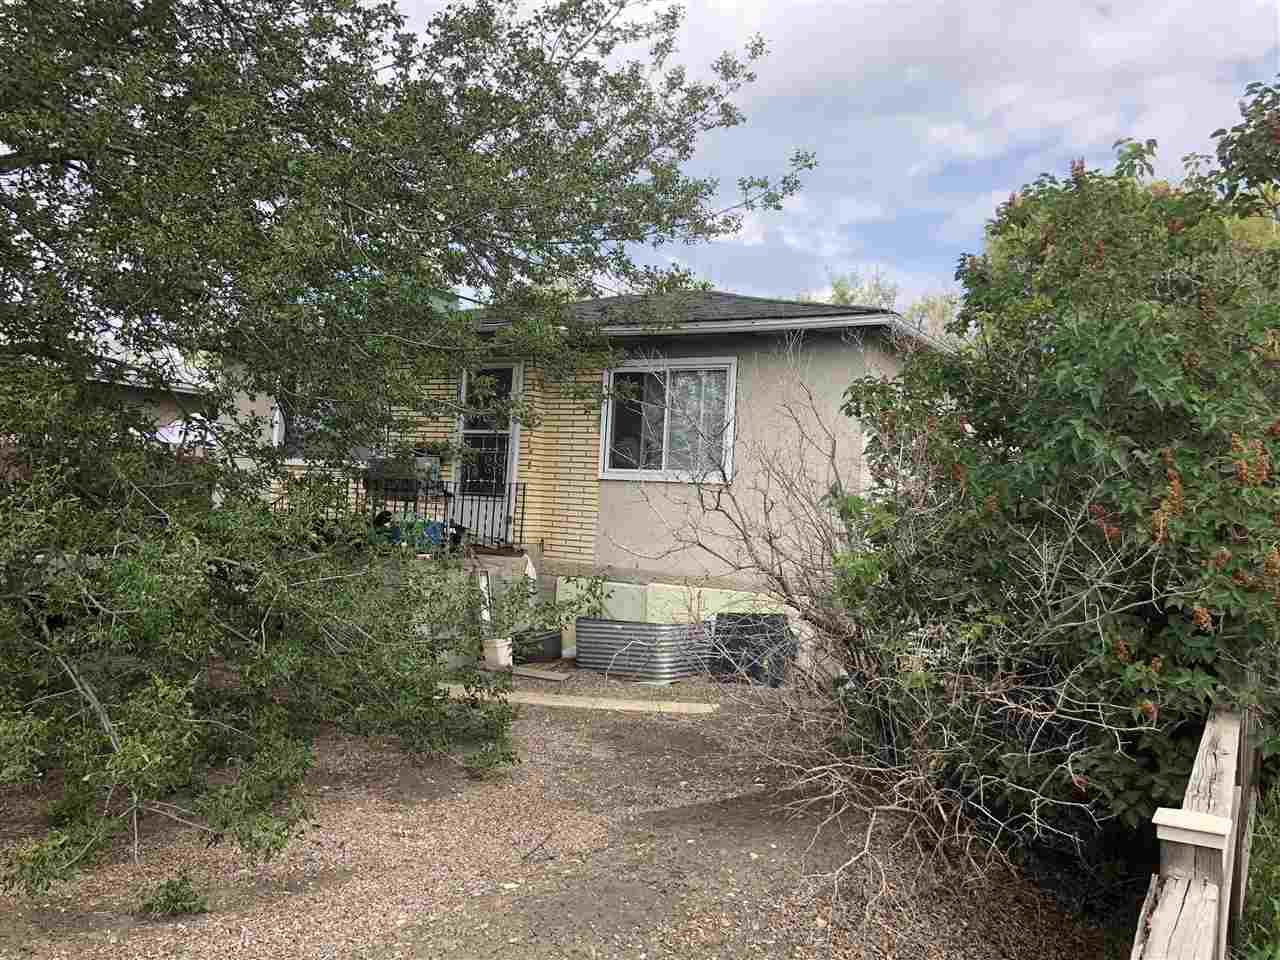 Main Photo: 16214 100A Ave in Edmonton: Zone 22 House for sale : MLS®# E4159092